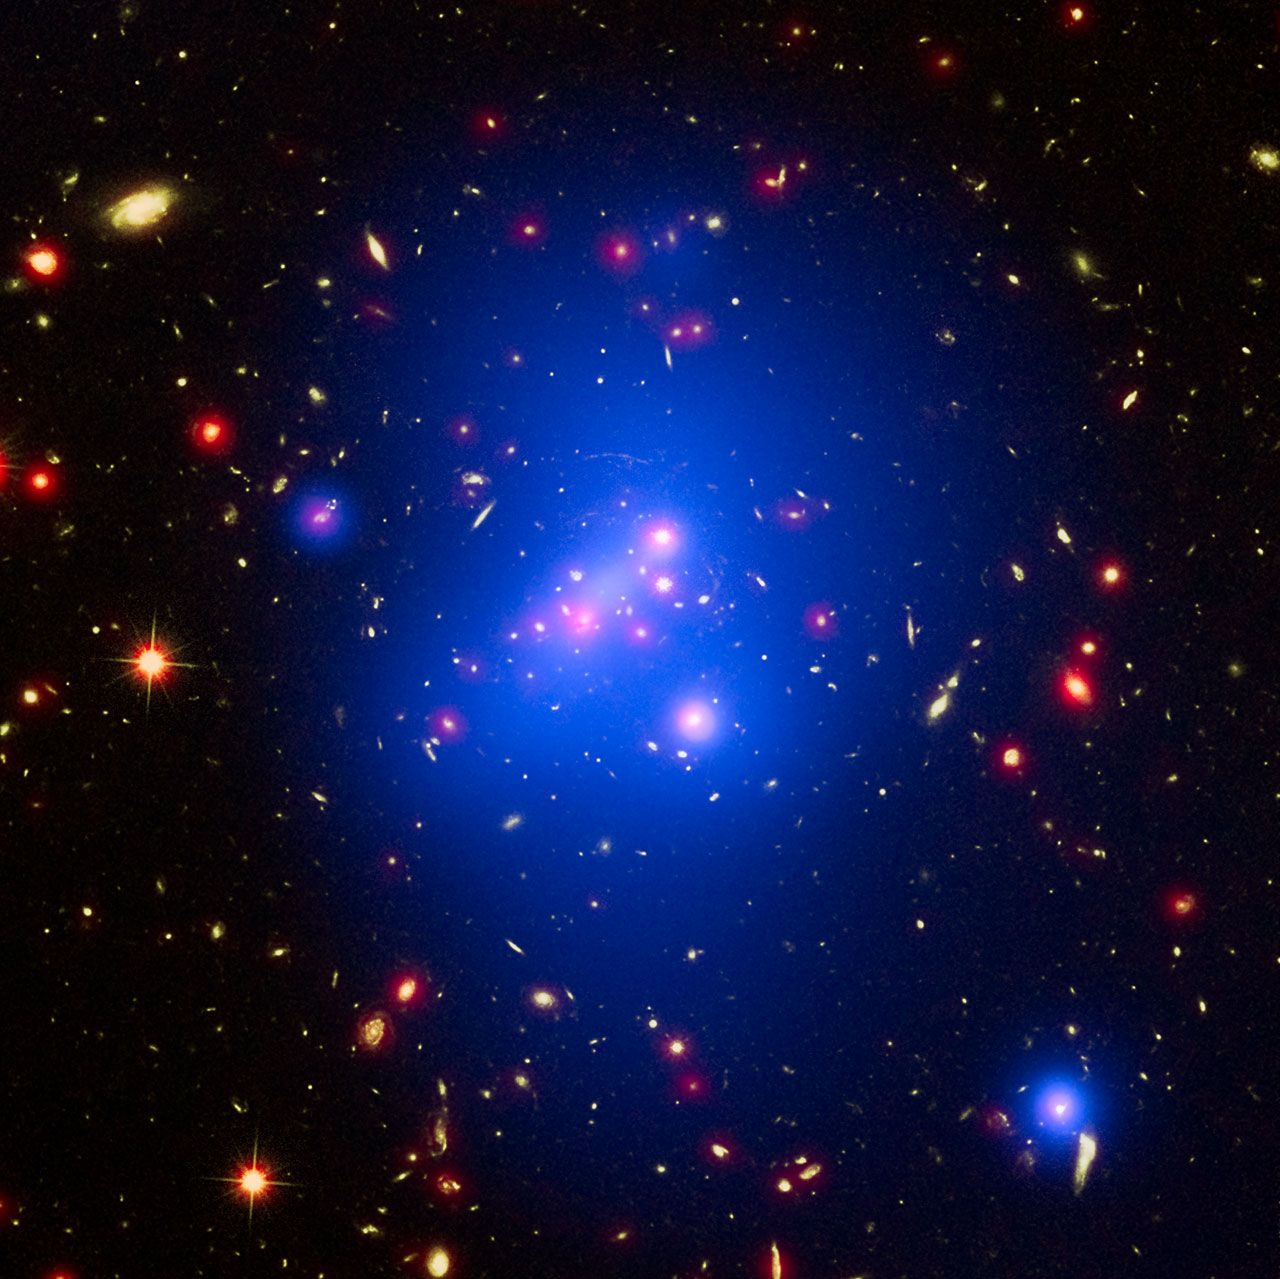 Galaxy cluster IDCS J1426Astronomers have made the most detailed study yet of an extremely massive young galaxy cluster using three space telescopes. This multi-wavelength image shows this galaxy cluster, called IDCS J1426.5+3508 (IDCS 1426 for short), in X-rays from the NASA Chandra X-ray Observatory in blue, visible light from the NASA/ESA Hubble Space Telescope in green, and infrared light from the NASA Spitzer Space Telescope in red.This rare galaxy cluster, which is located 10 billion…